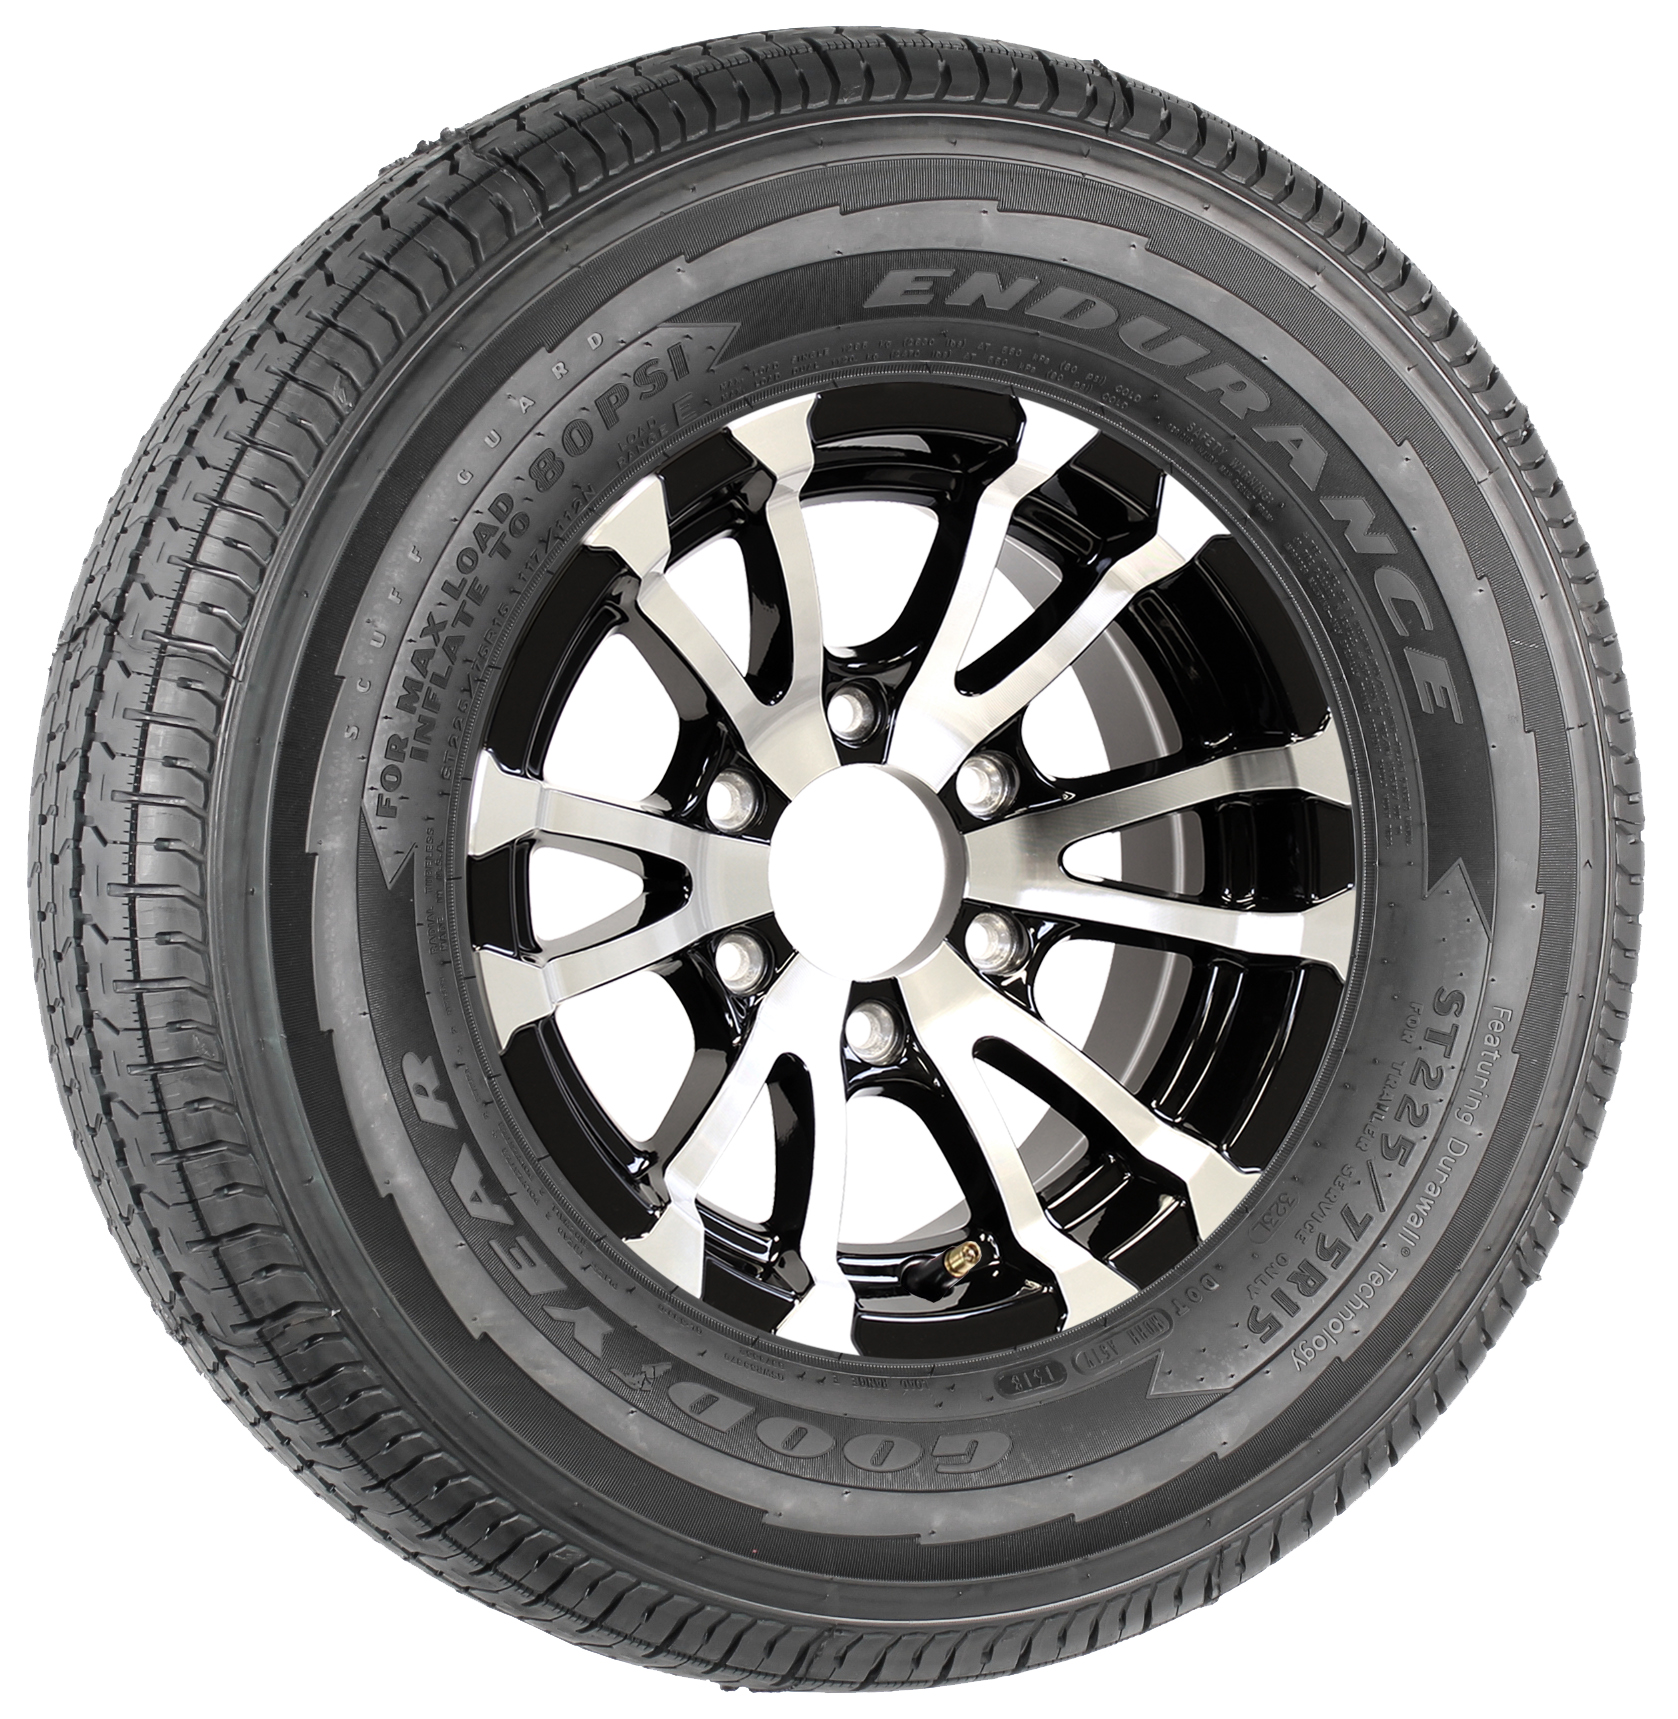 """Goodyear Endurance ST225/75R15 LRE Radial Tire on 15"""" 6-Lug Avalanche Black Aluminum Assembly Image"""